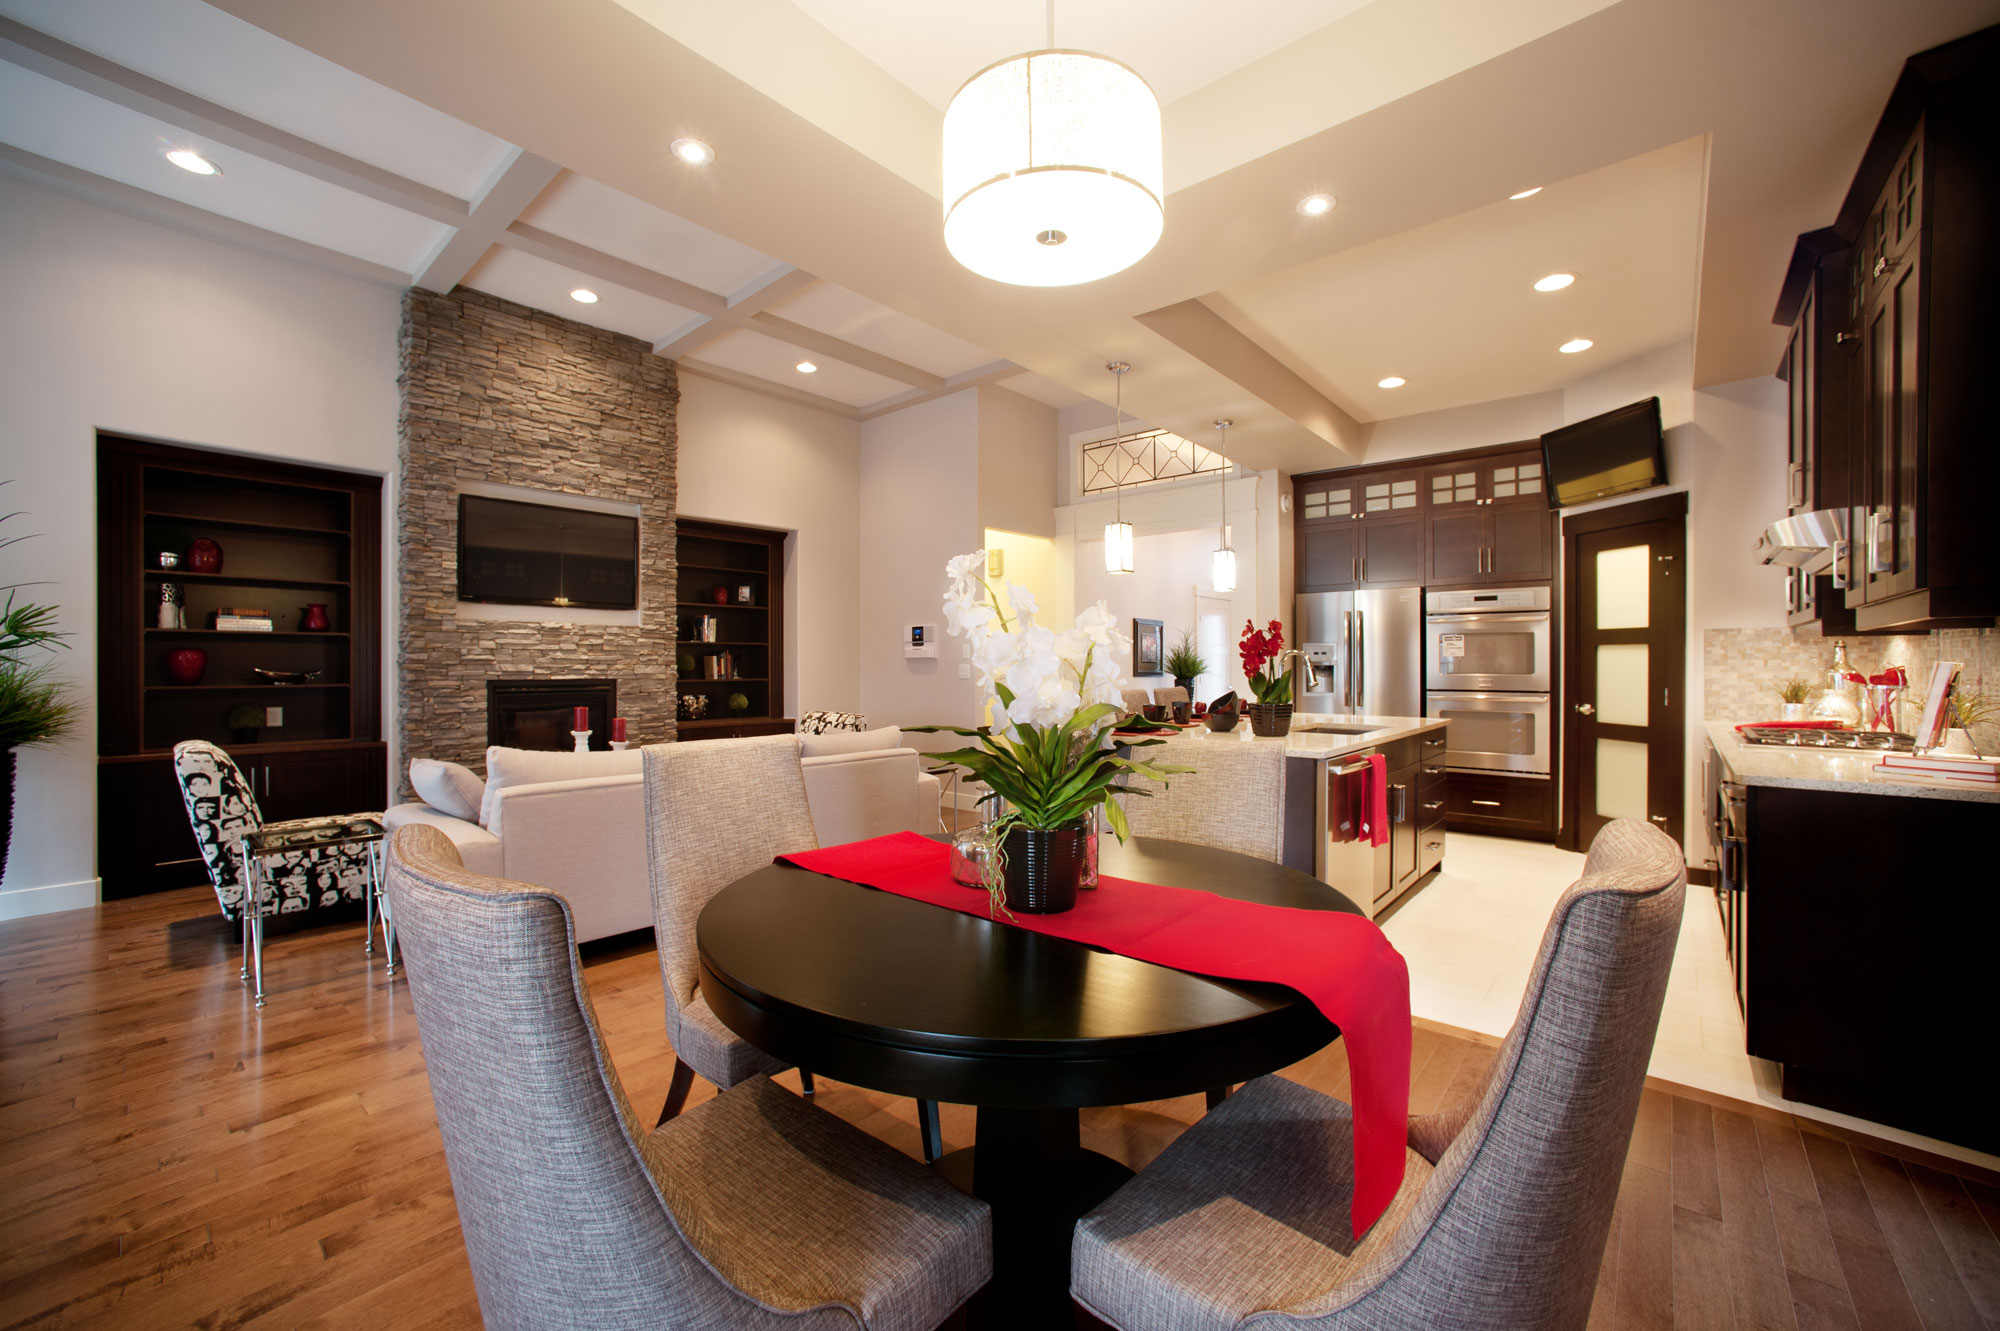 The Yorkshire, one of our latest show homes in Edmonton